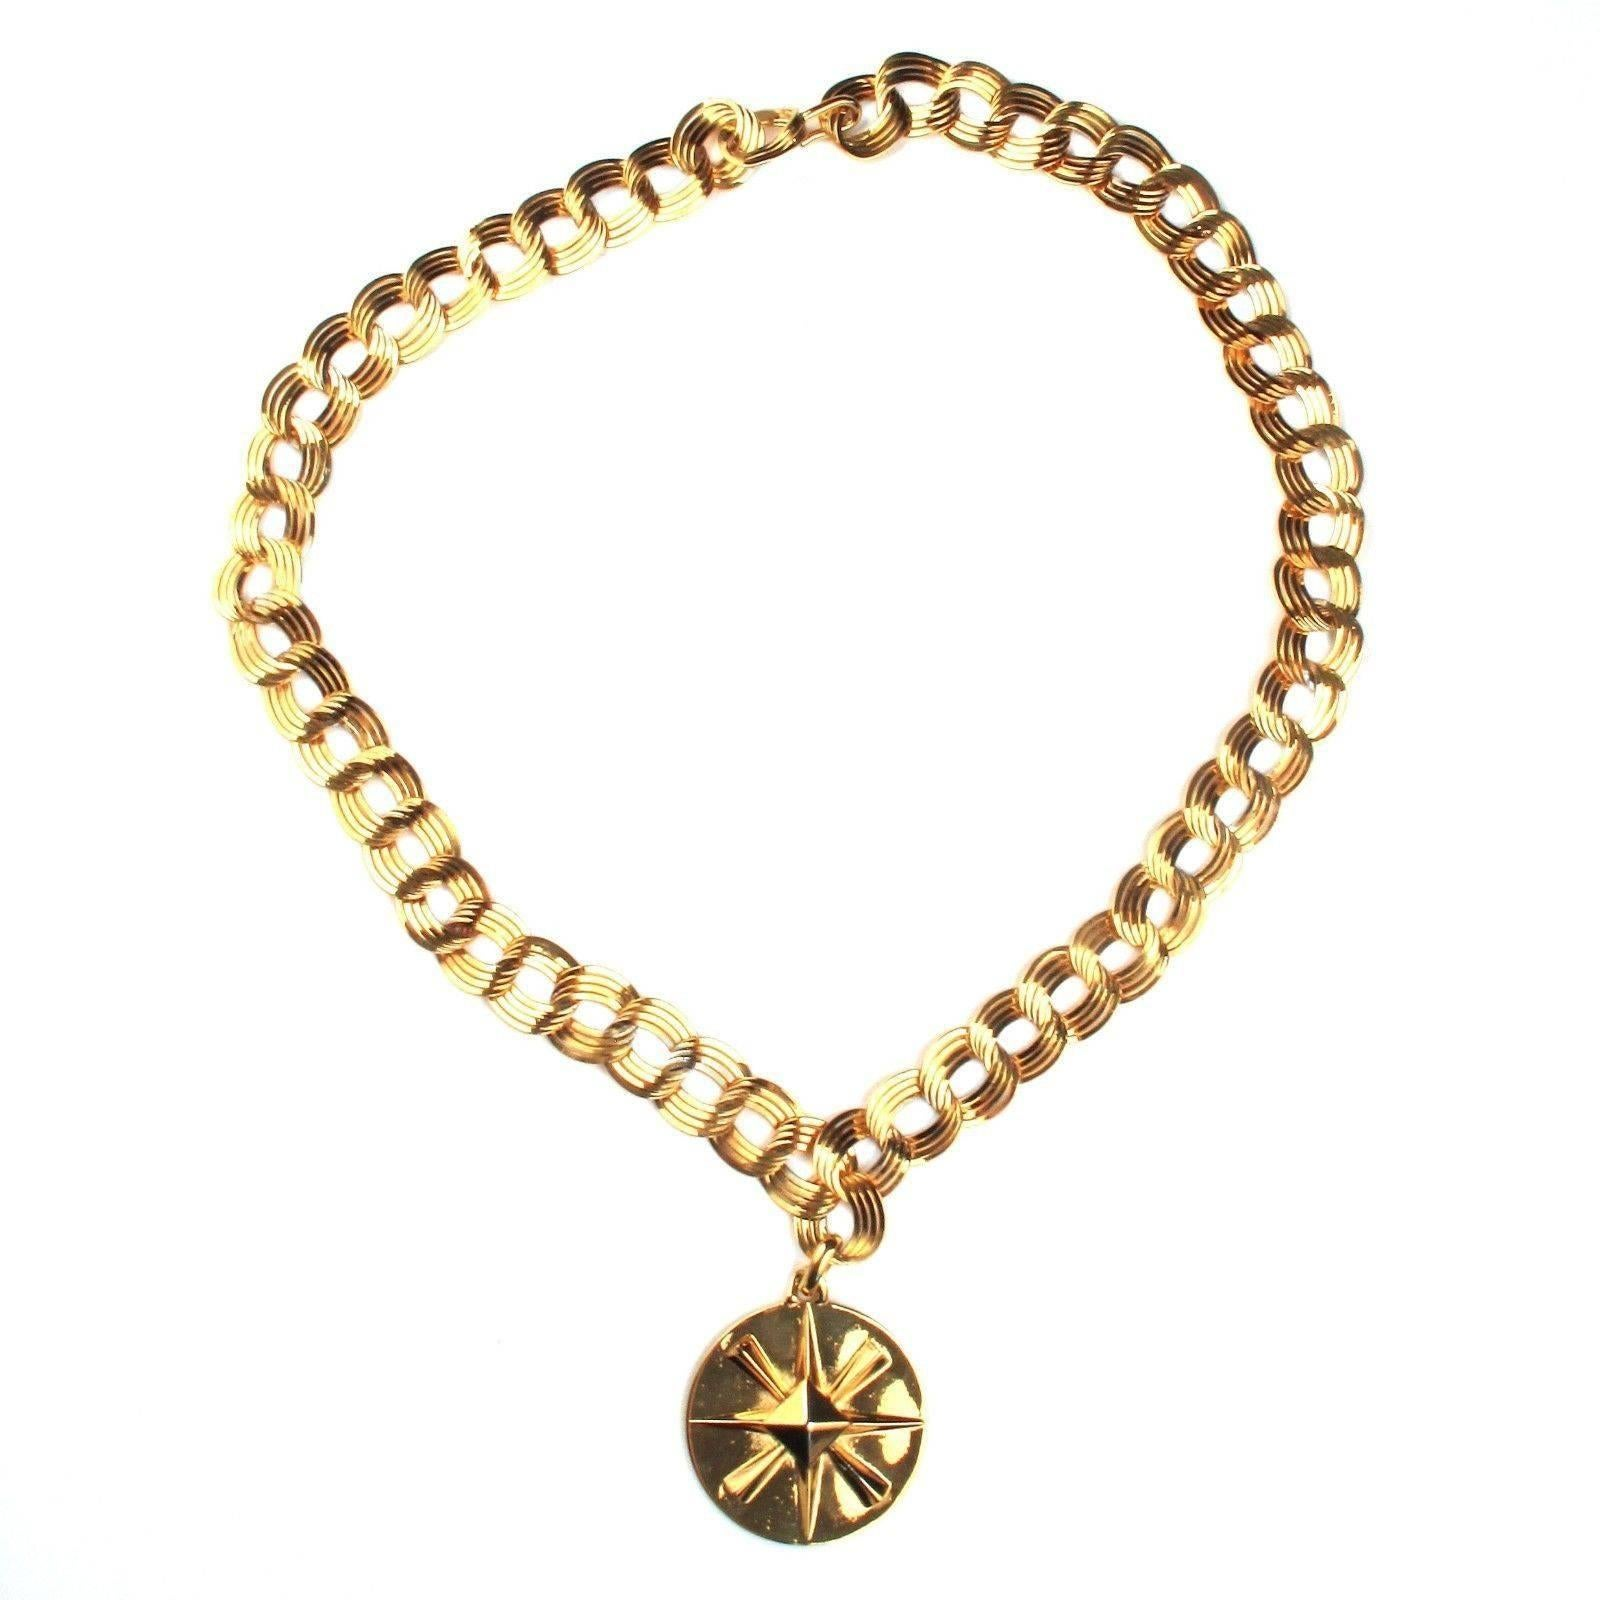 style jewelry necklace gold product viducci watches overstock today chain vintage shipping medallion diamond white free